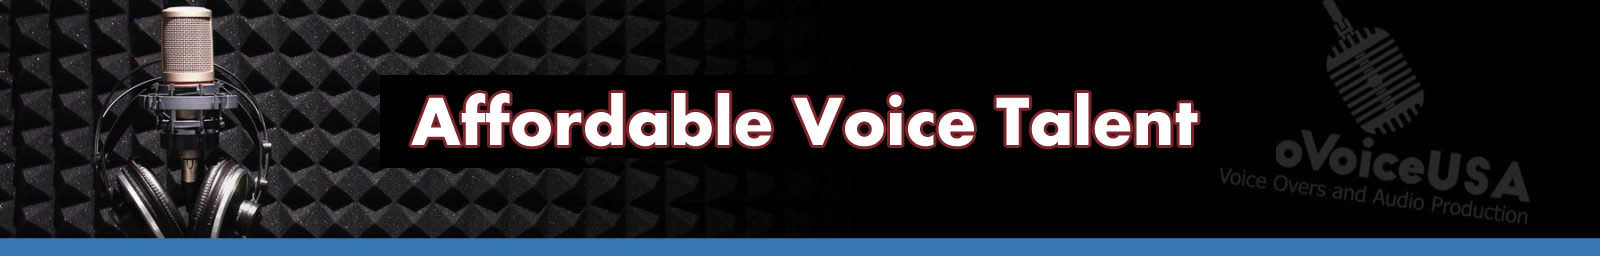 Affordable Voice Talent header